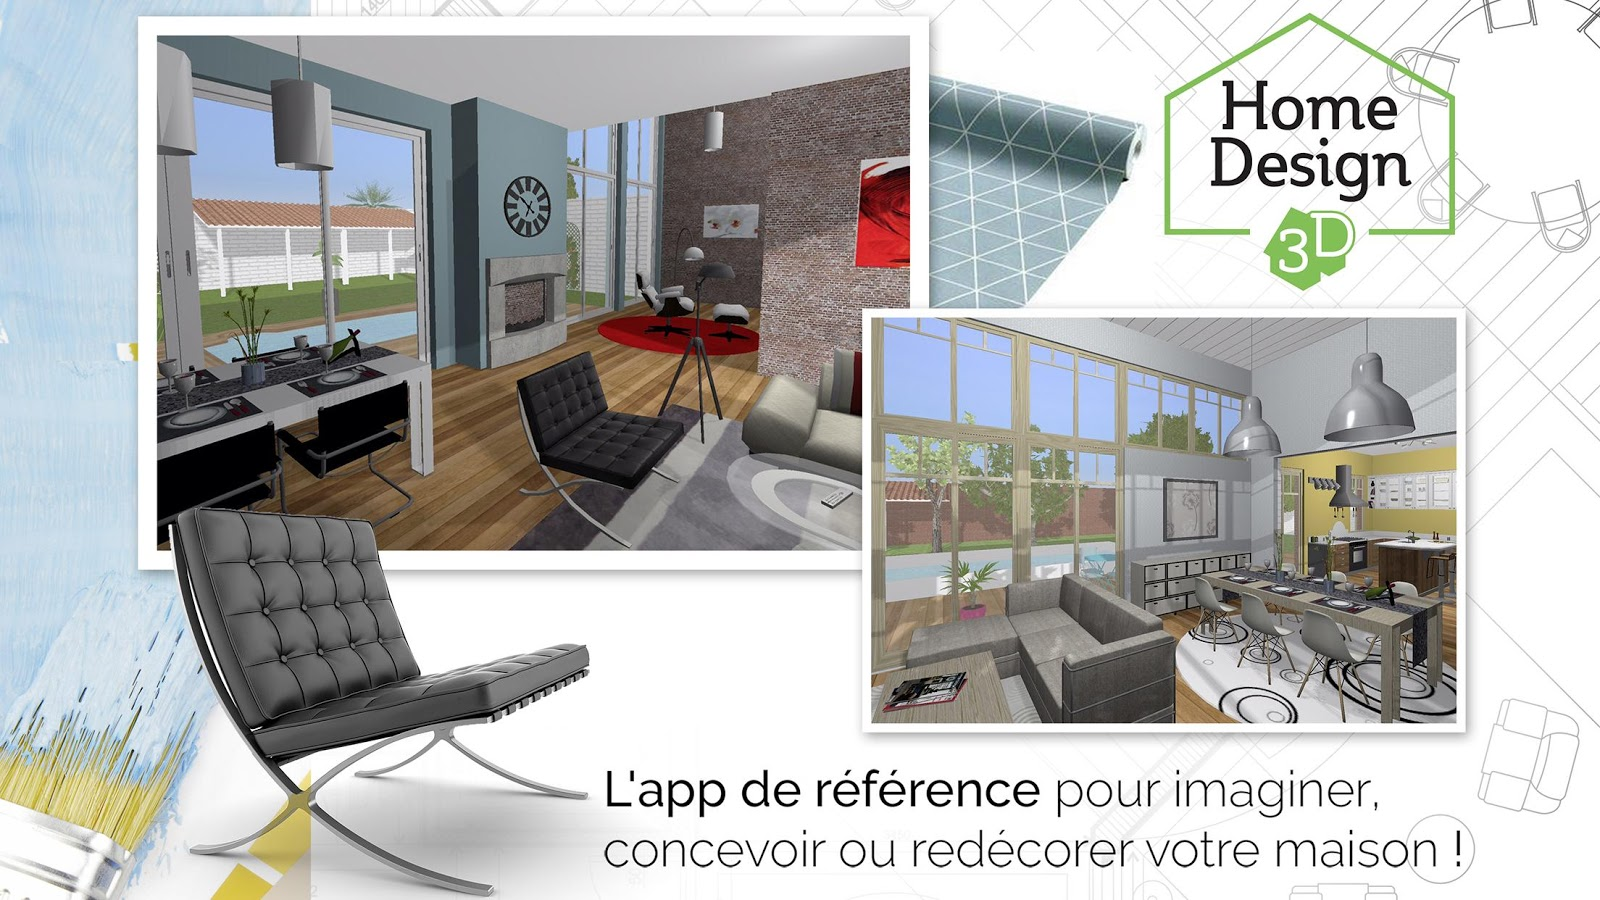 Home design 3d freemium applications android sur Free home design app